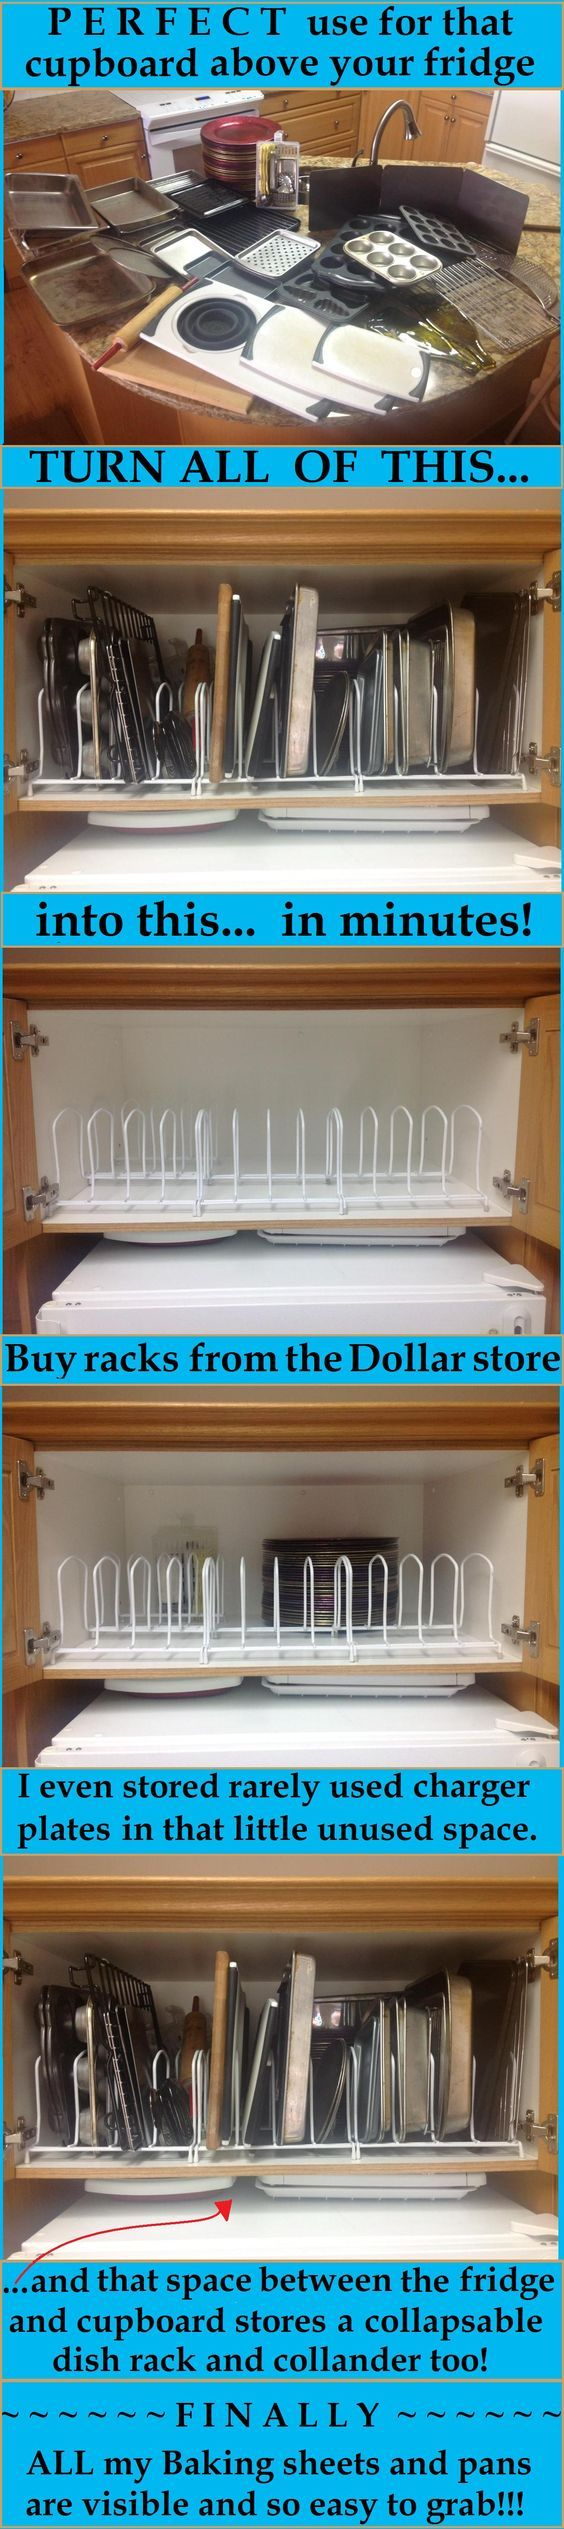 Dollar store dish racks to separate the pans and lids in a cabinet above the fridge